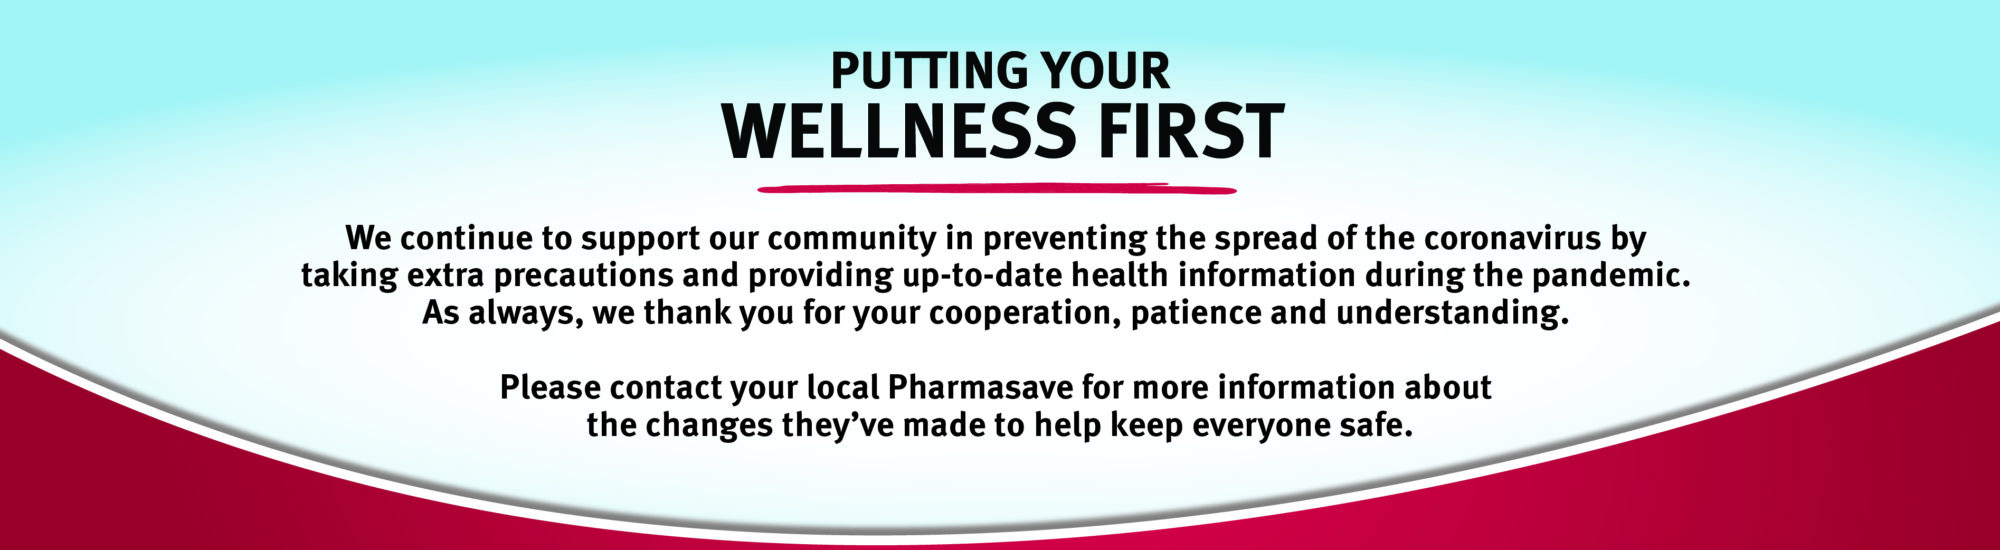 Your wellness first